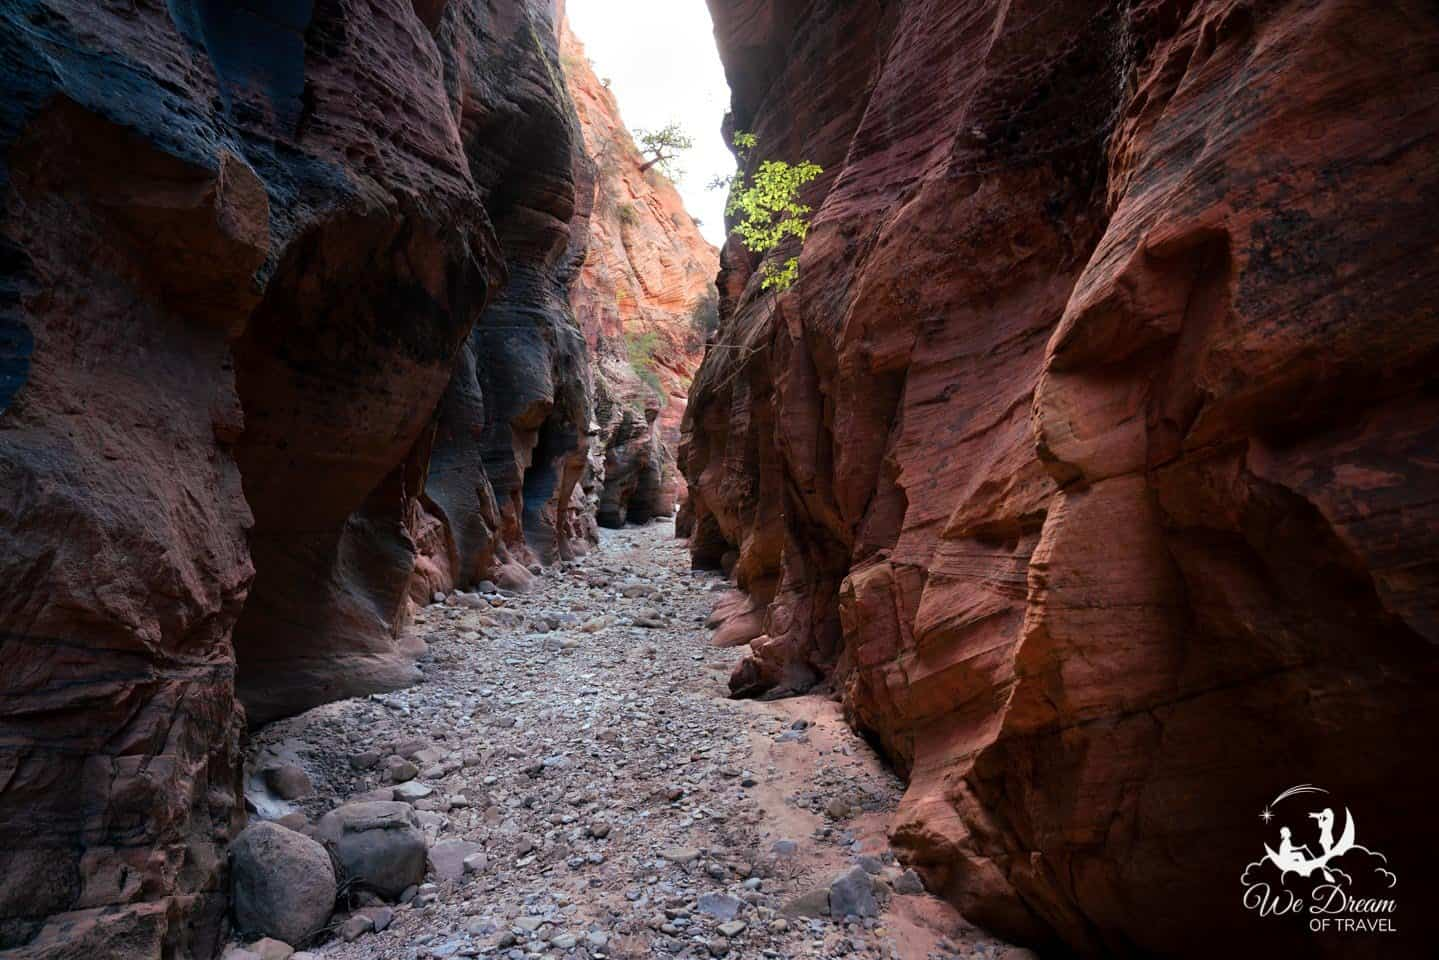 Time permitting, be sure to wander the Pine Creek wash on your way to Bryce Canyon from Zion to discover a plethora of hidden slot canyons.